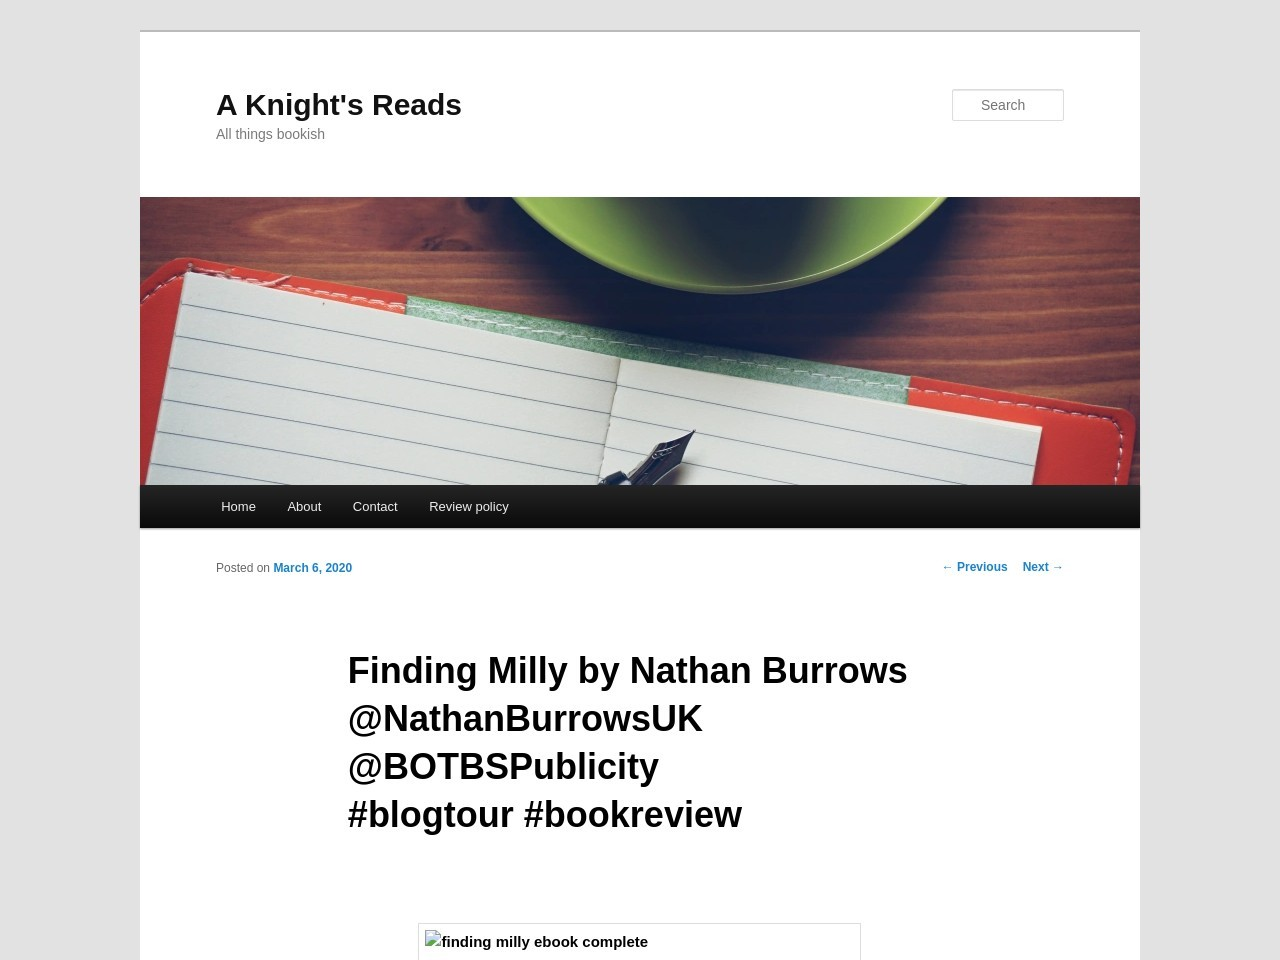 Finding Milly by Nathan Burrows @NathanBurrowsUK @BOTBSPublicity #blogtour #bookreview